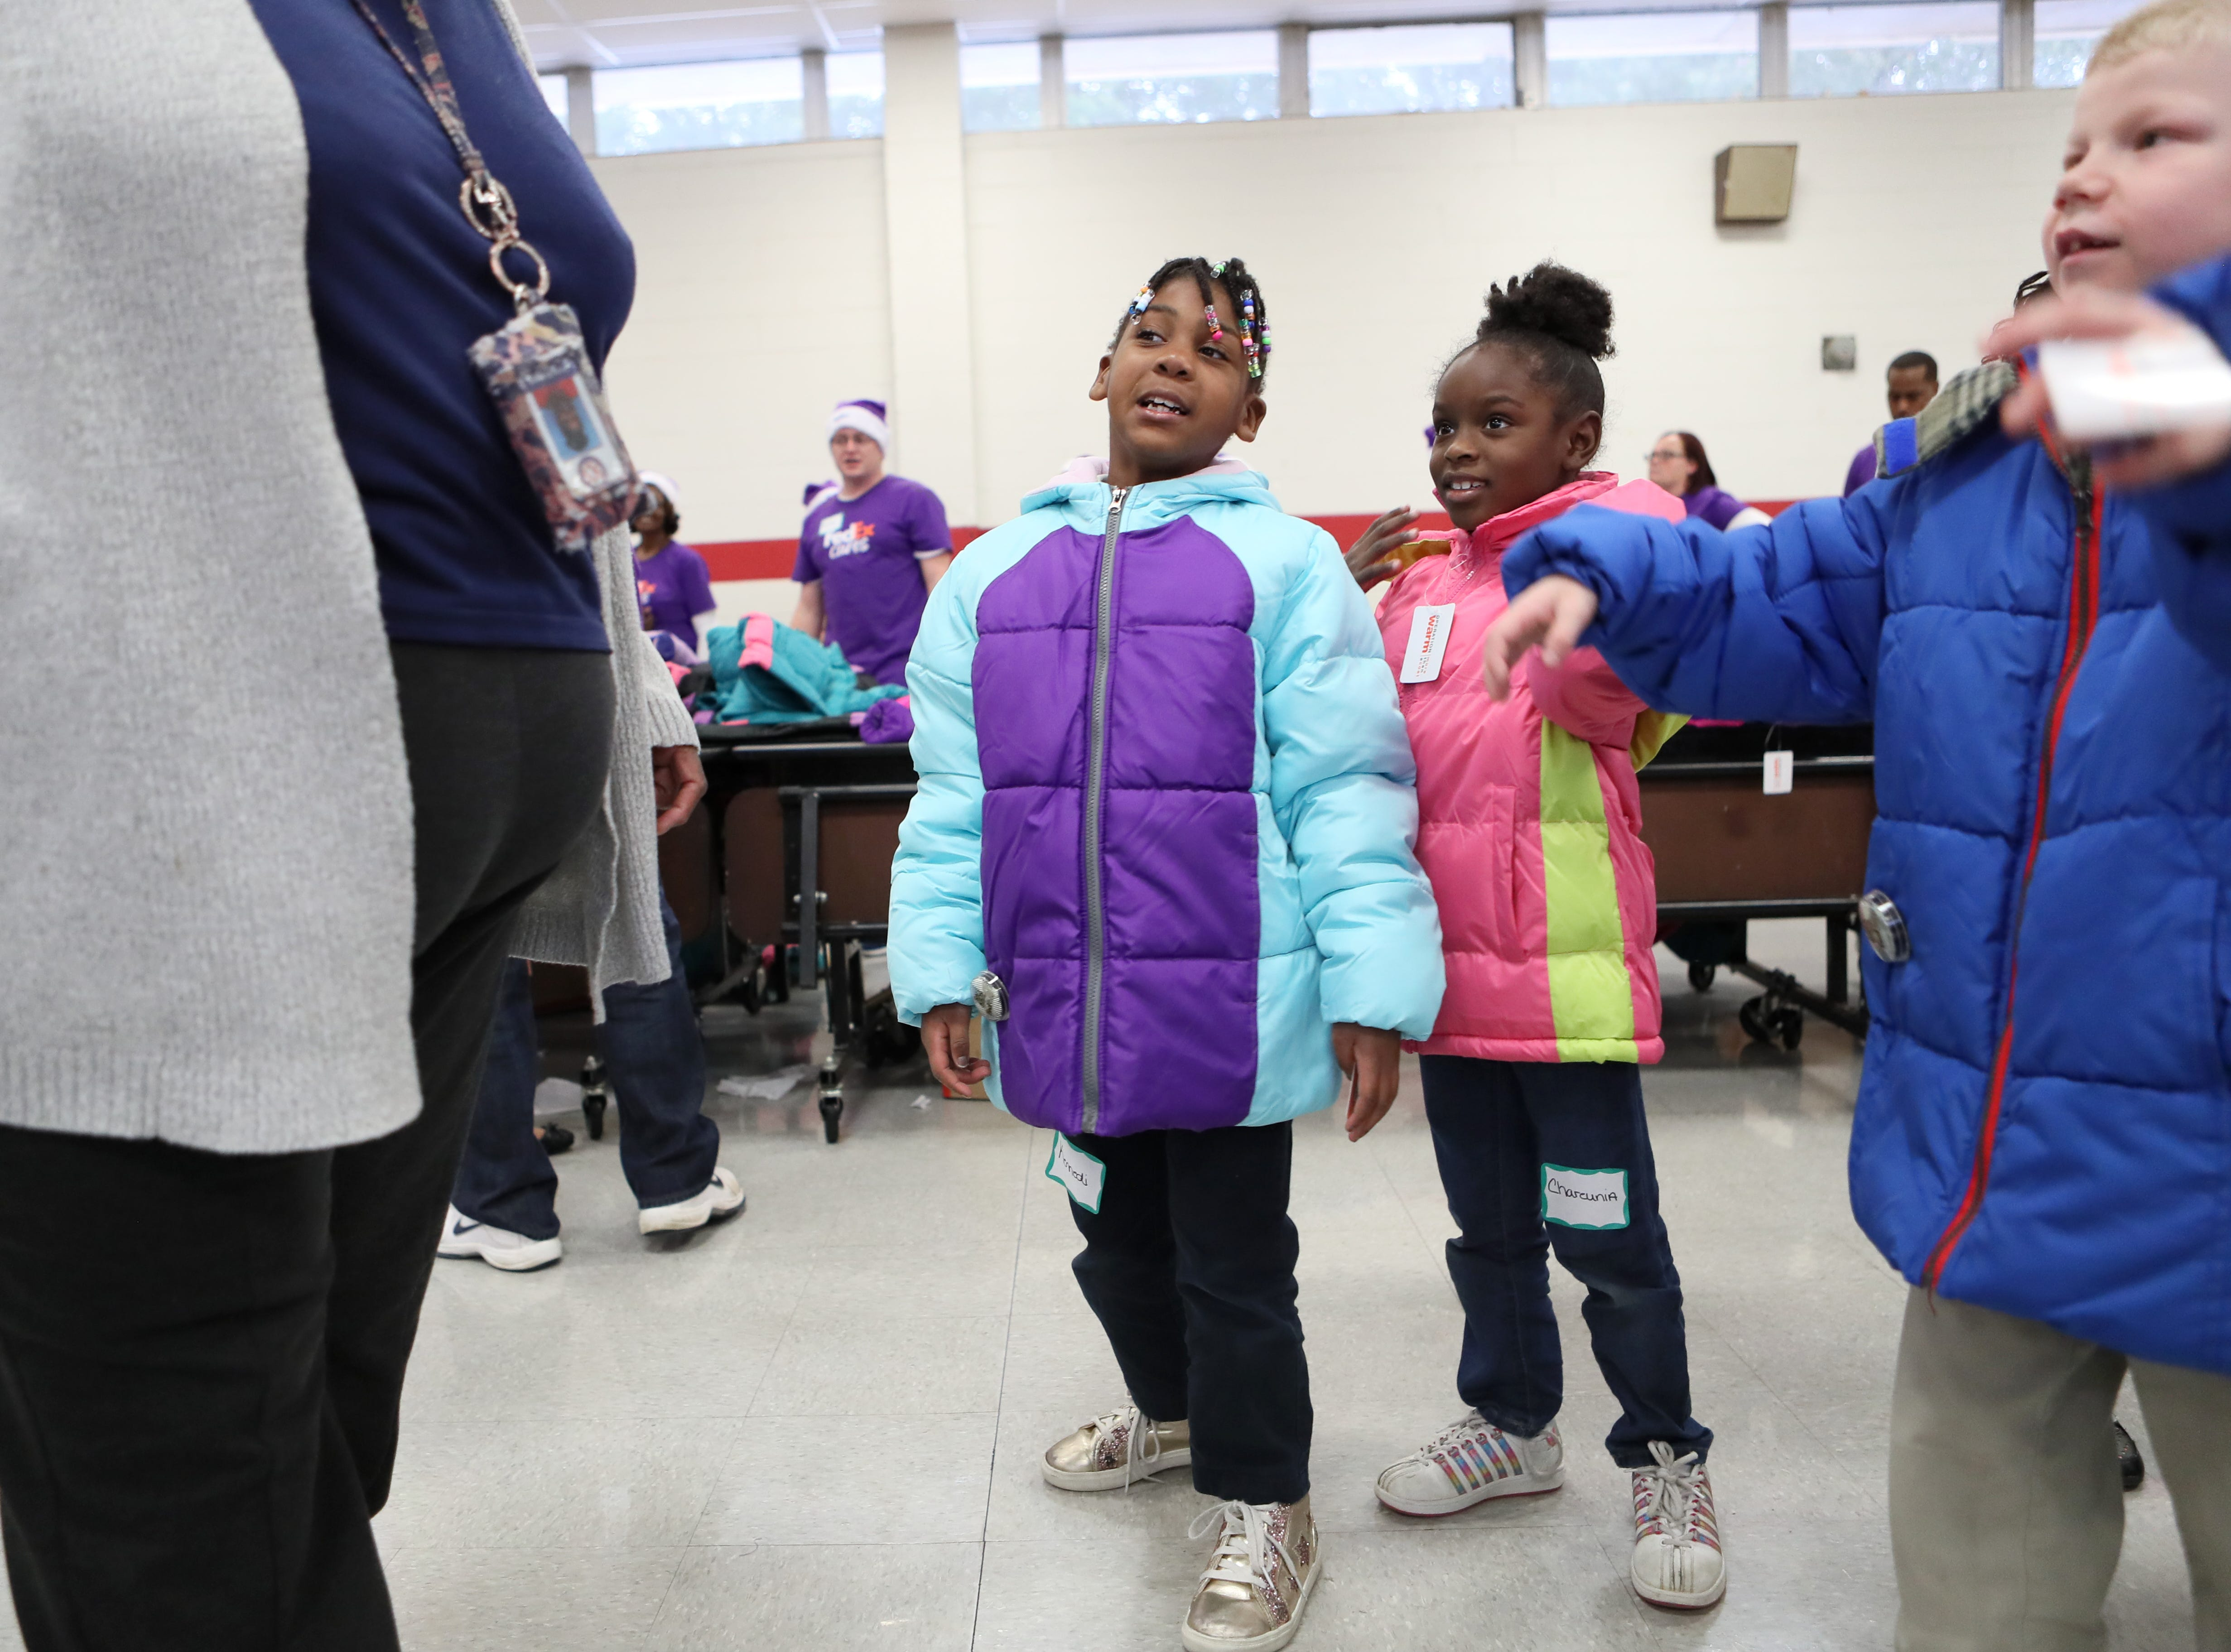 FedEx, the Memphis Grizzlies and Operation Warm surprised children with new coats at Hawkins Mill Elementary School on Thursday, Nov. 8, 2018.